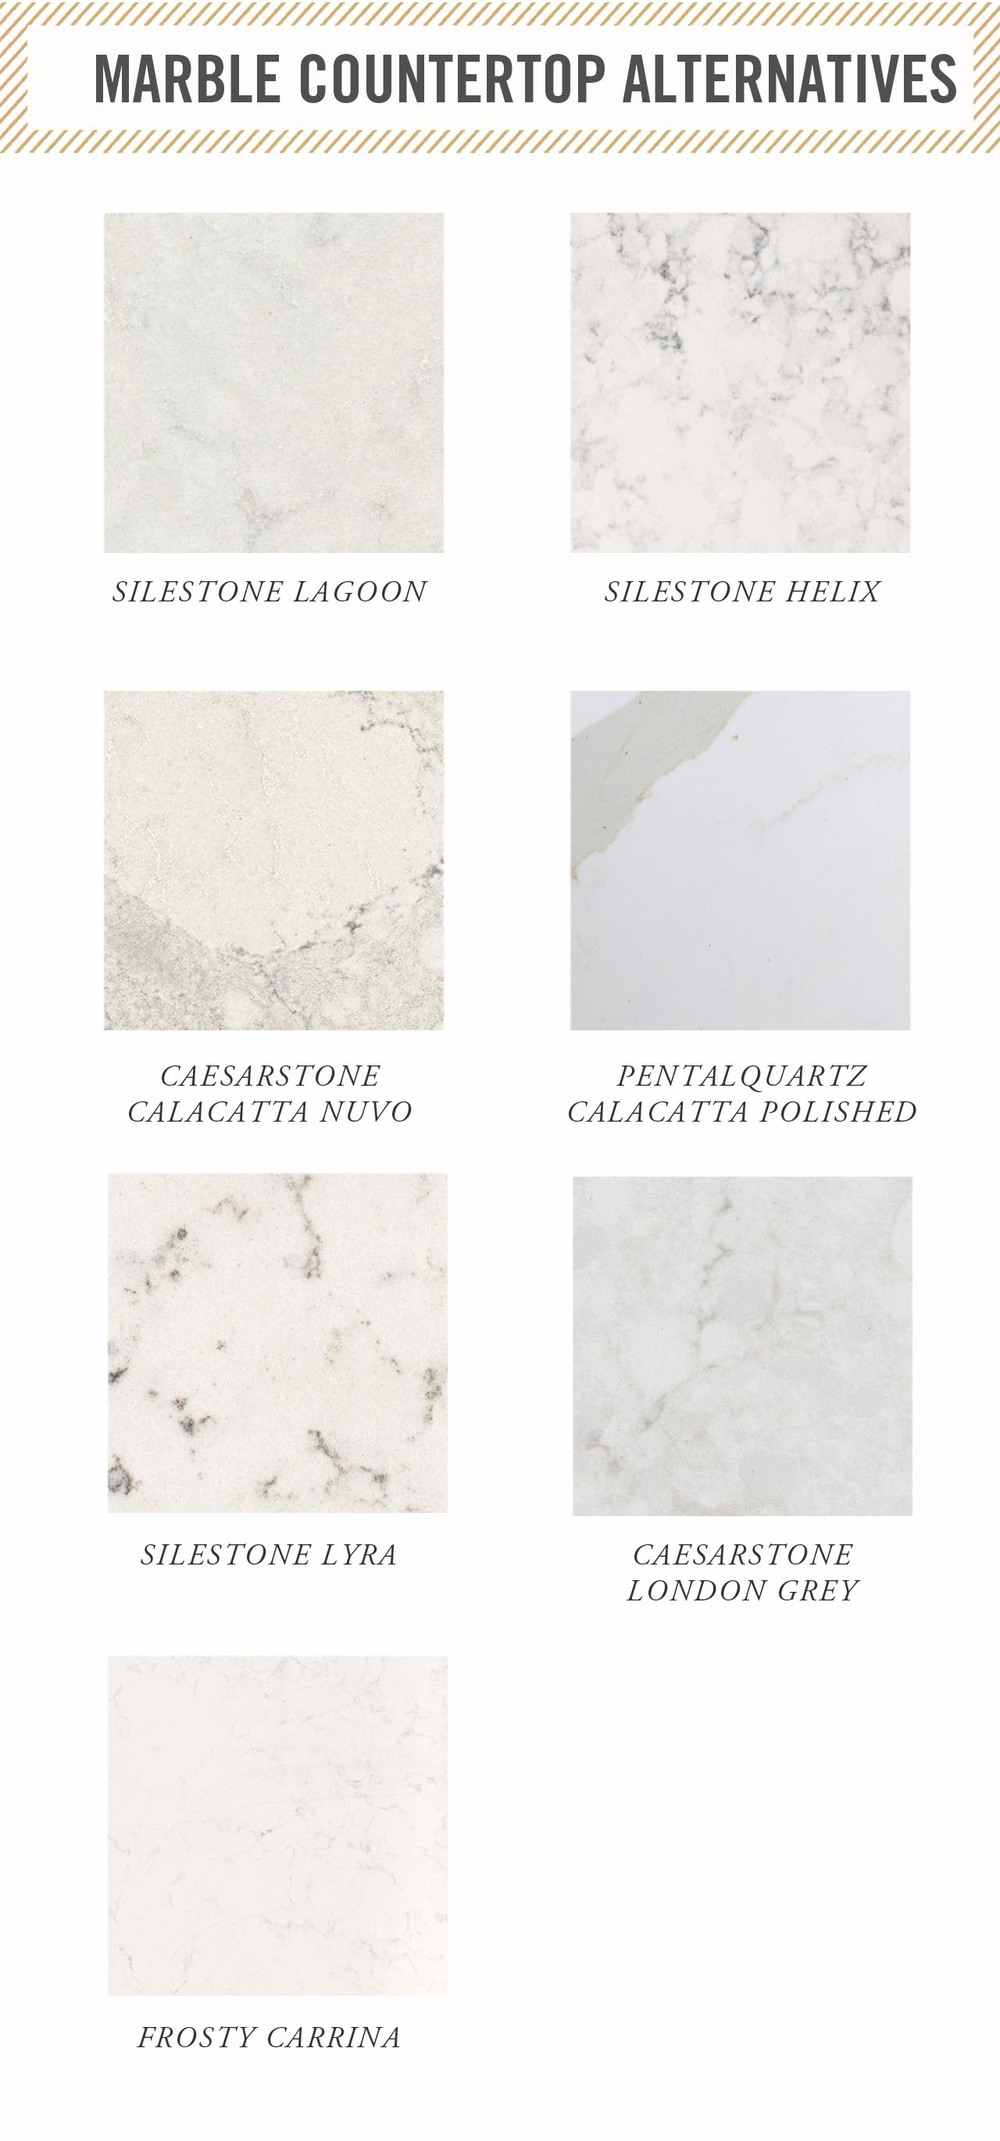 the best marble countertops alternatives